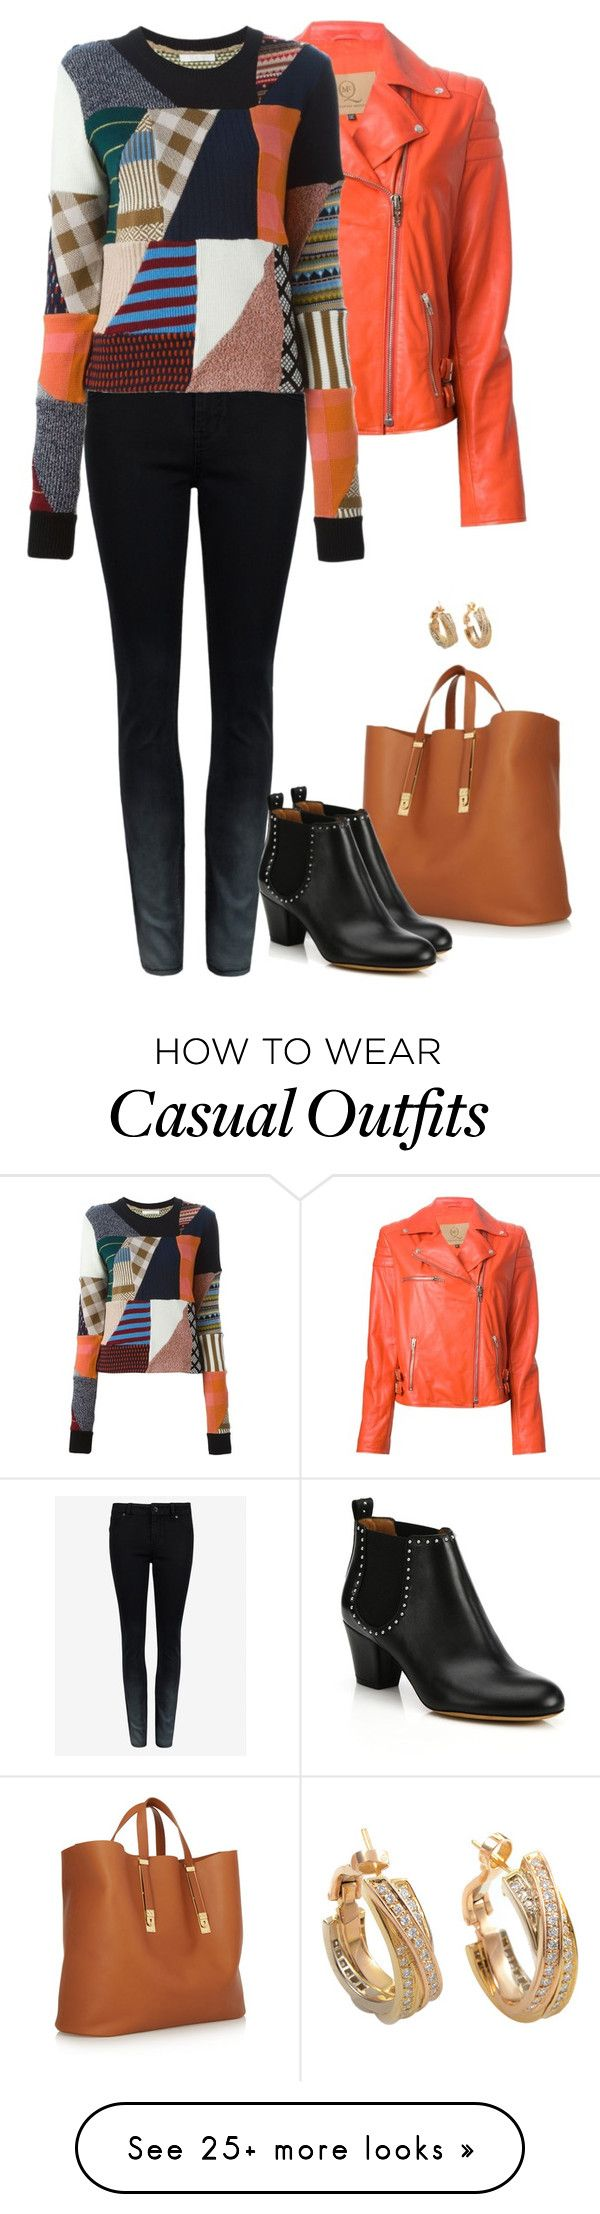 """Casual Elegance DCXXIV"" by gatbar on Polyvore featuring McQ by Alexander McQueen, Sophie Hulme, Ted Baker, Chloé and Givenchy"